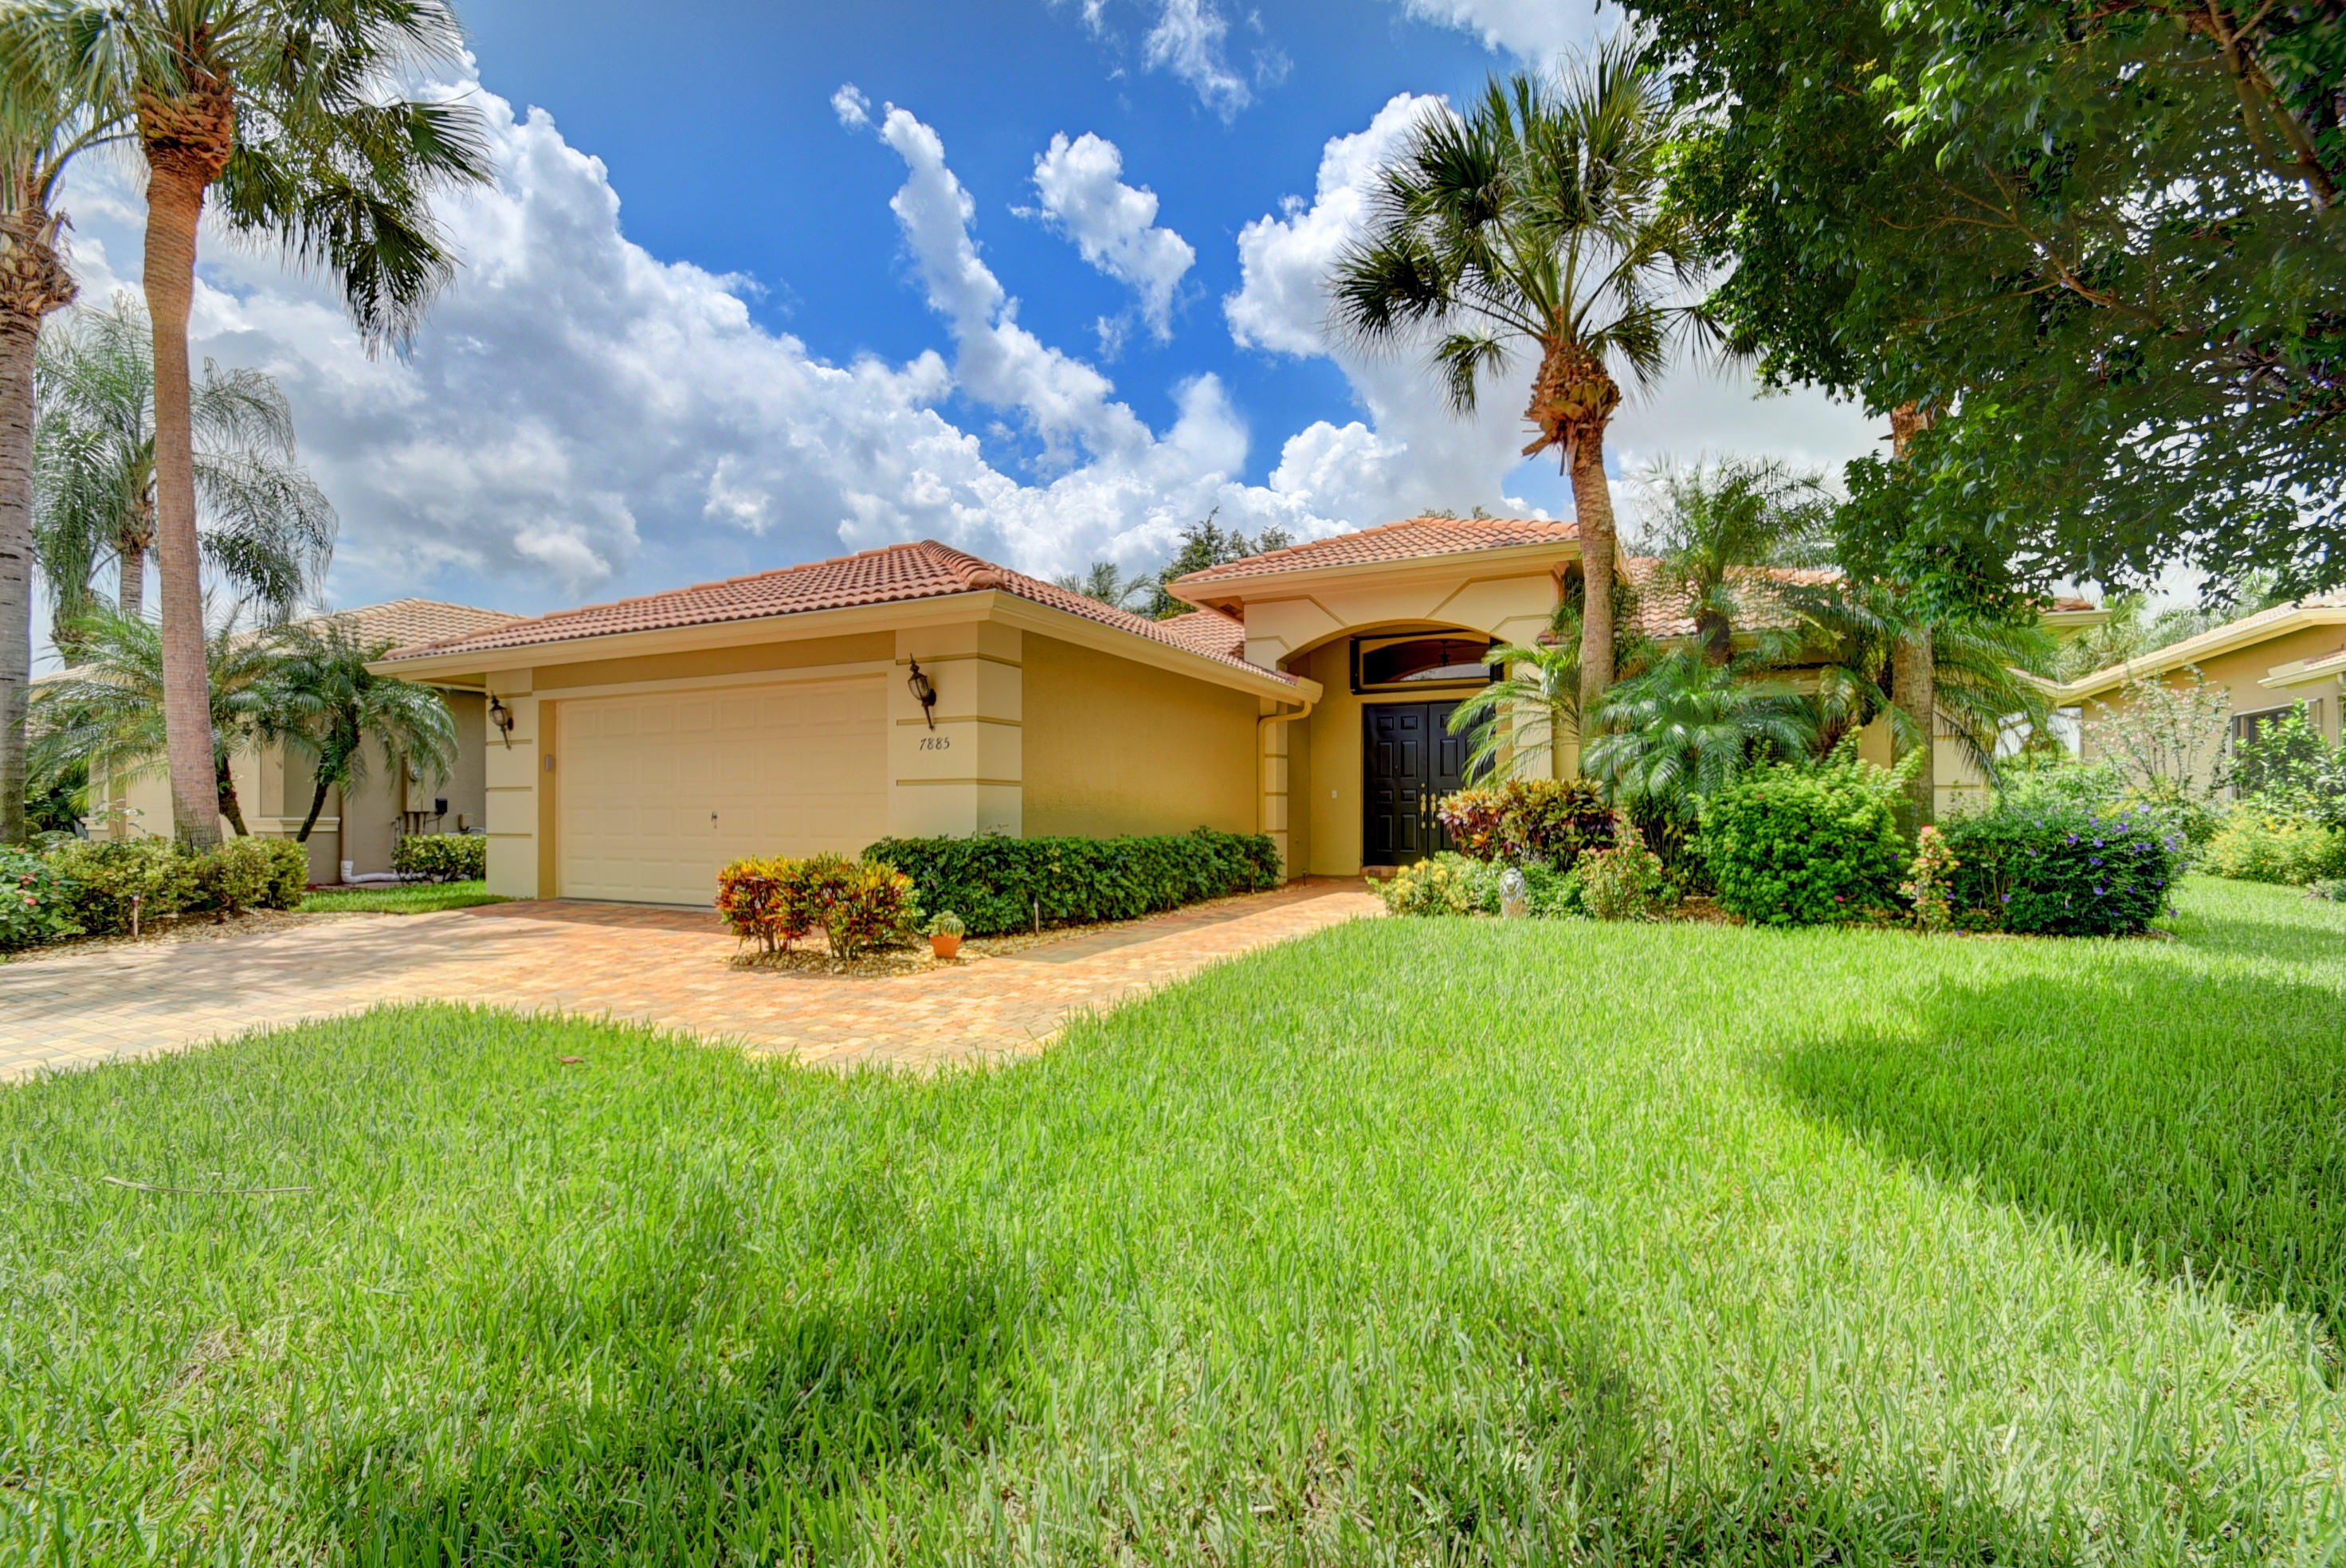 Home for sale in Tivoli Reserve Boynton Beach Florida